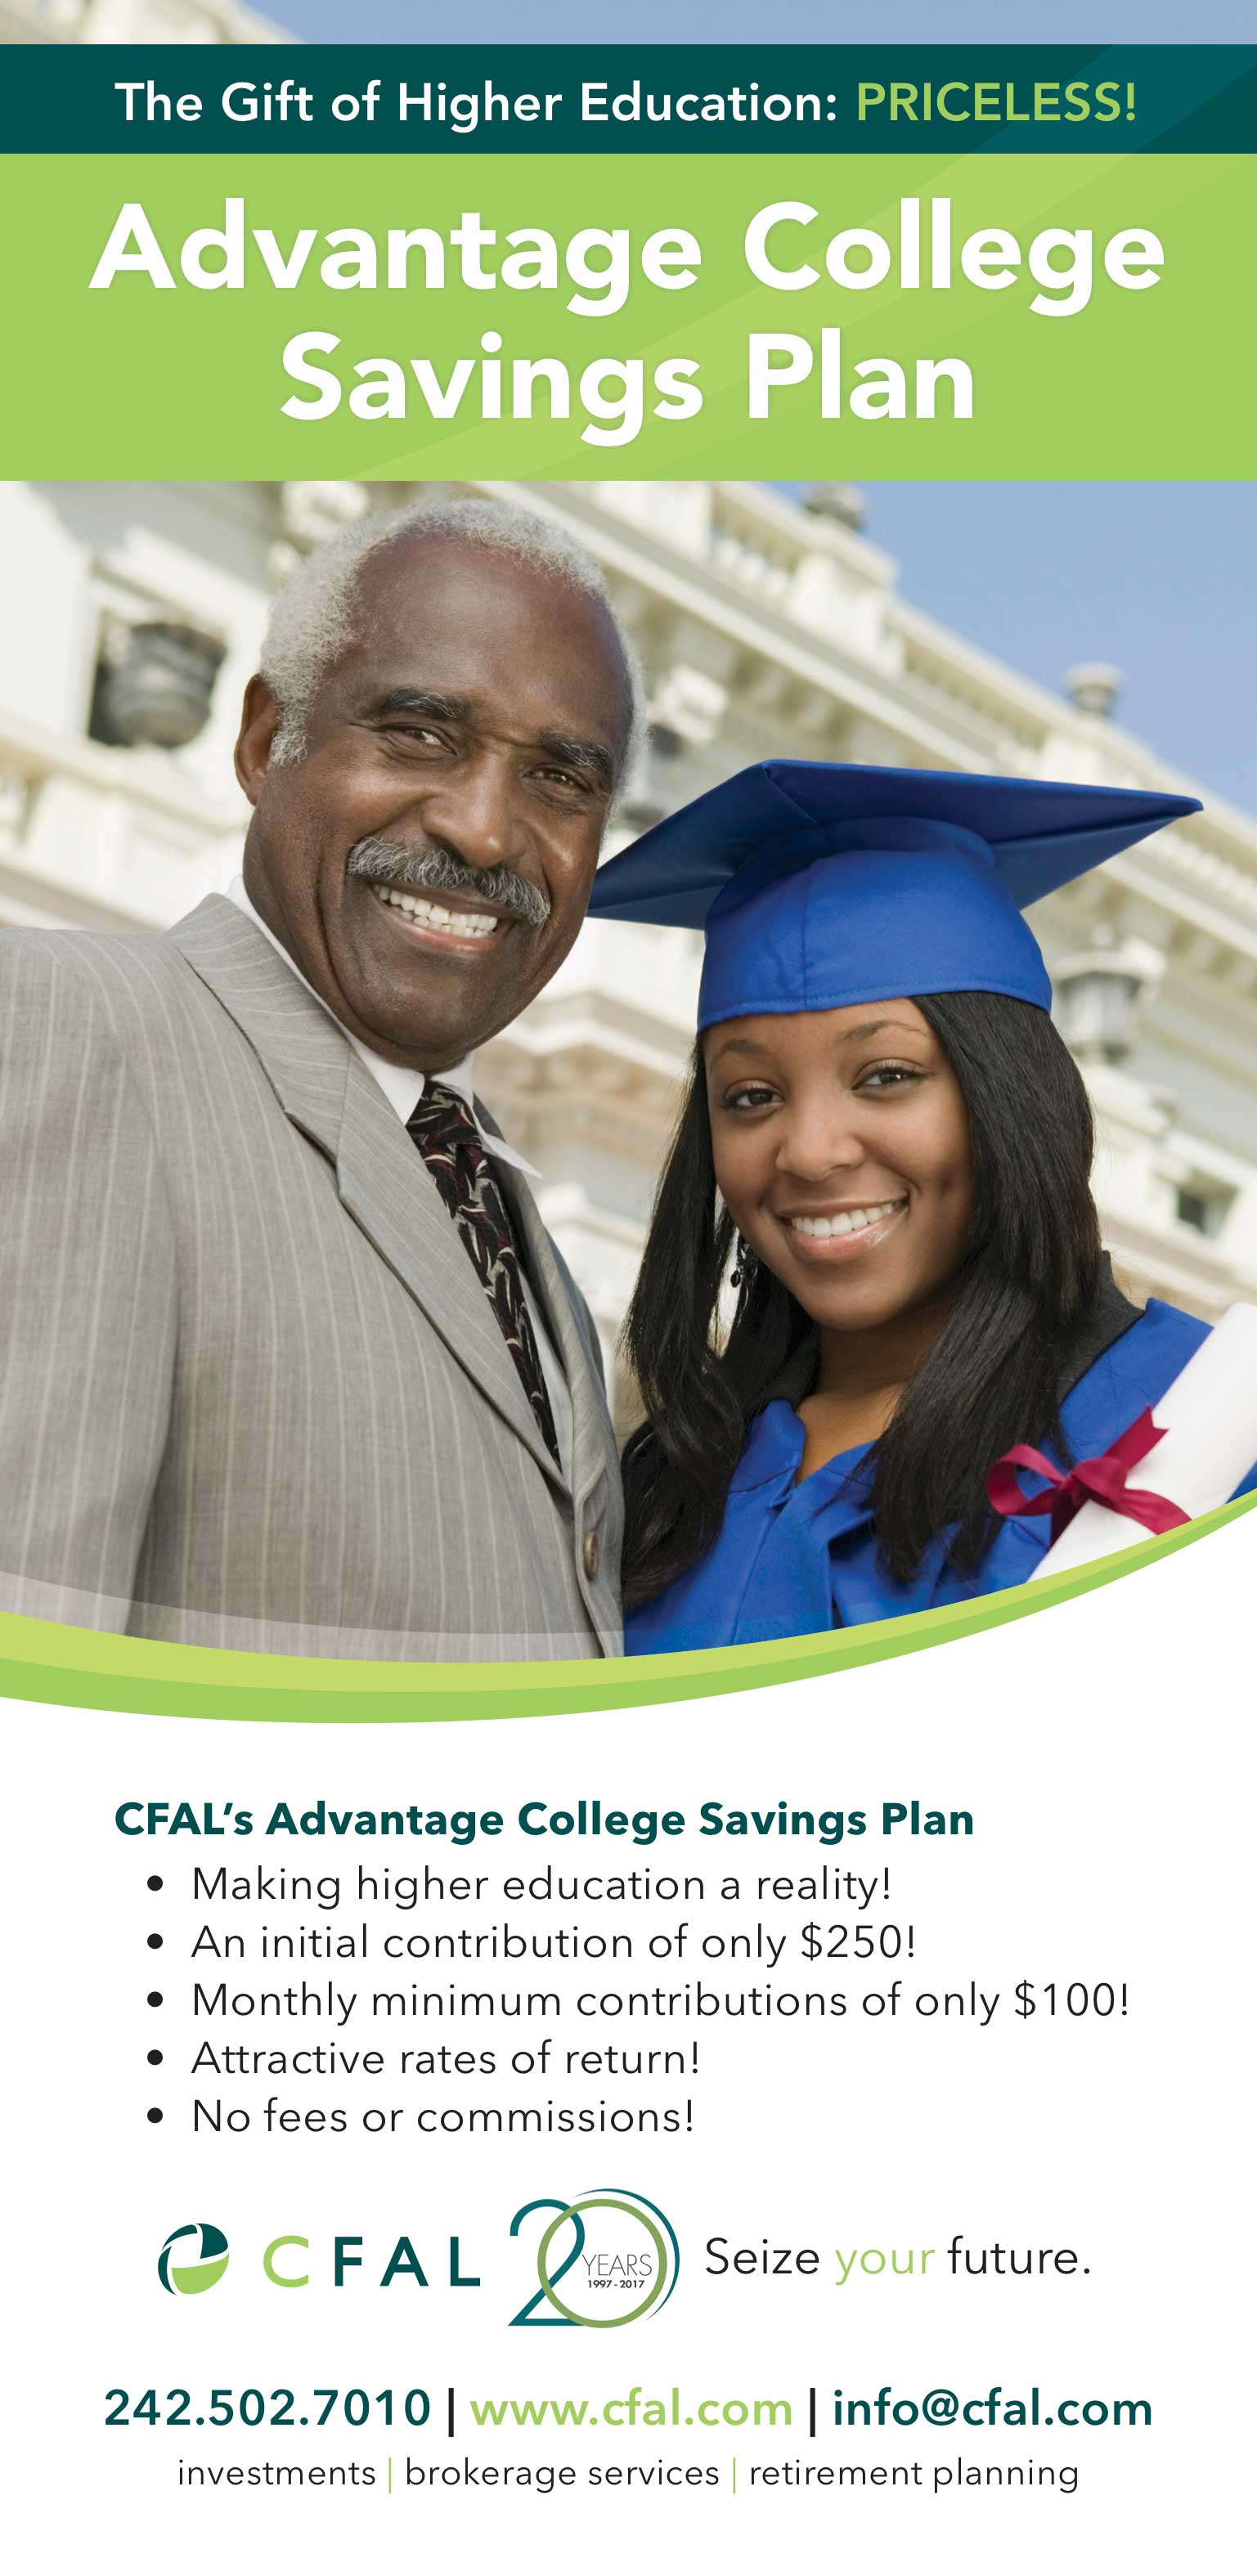 CFAL-Advantage-College-Plan-ad-final.jpg